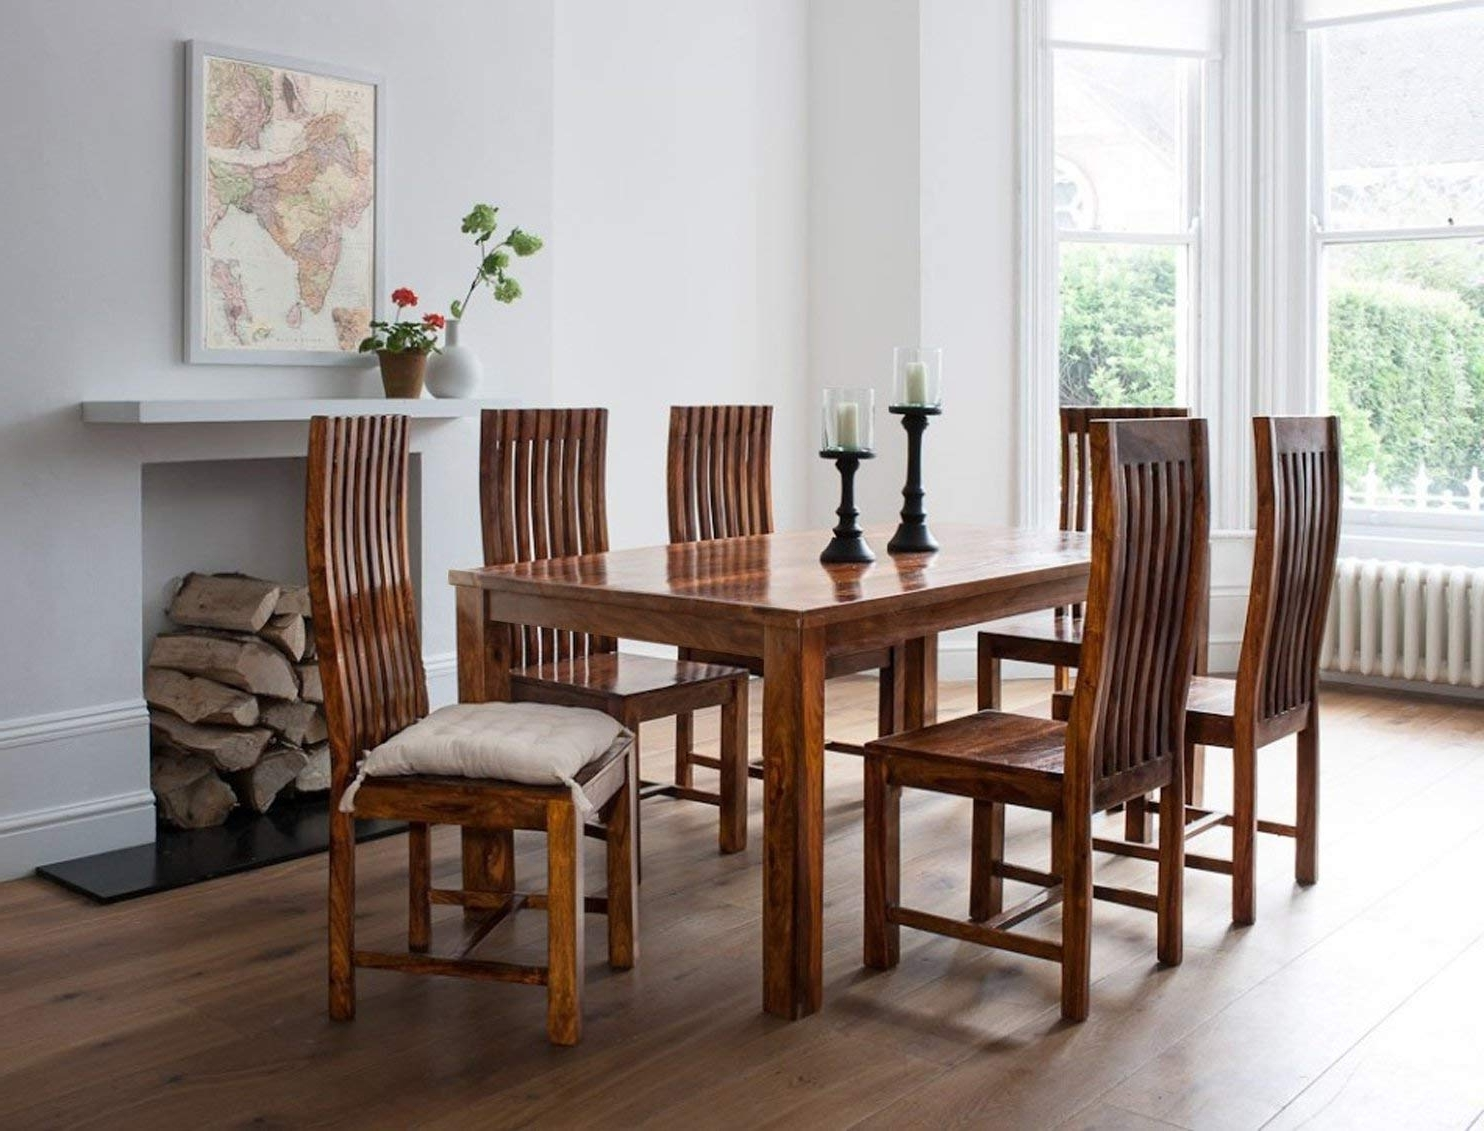 Sheesham Dining Tables And 4 Chairs With Regard To Trendy Lifeestyle Handcrafted Sheesham Wood 6 Seater Dining Set (Honey (View 23 of 25)